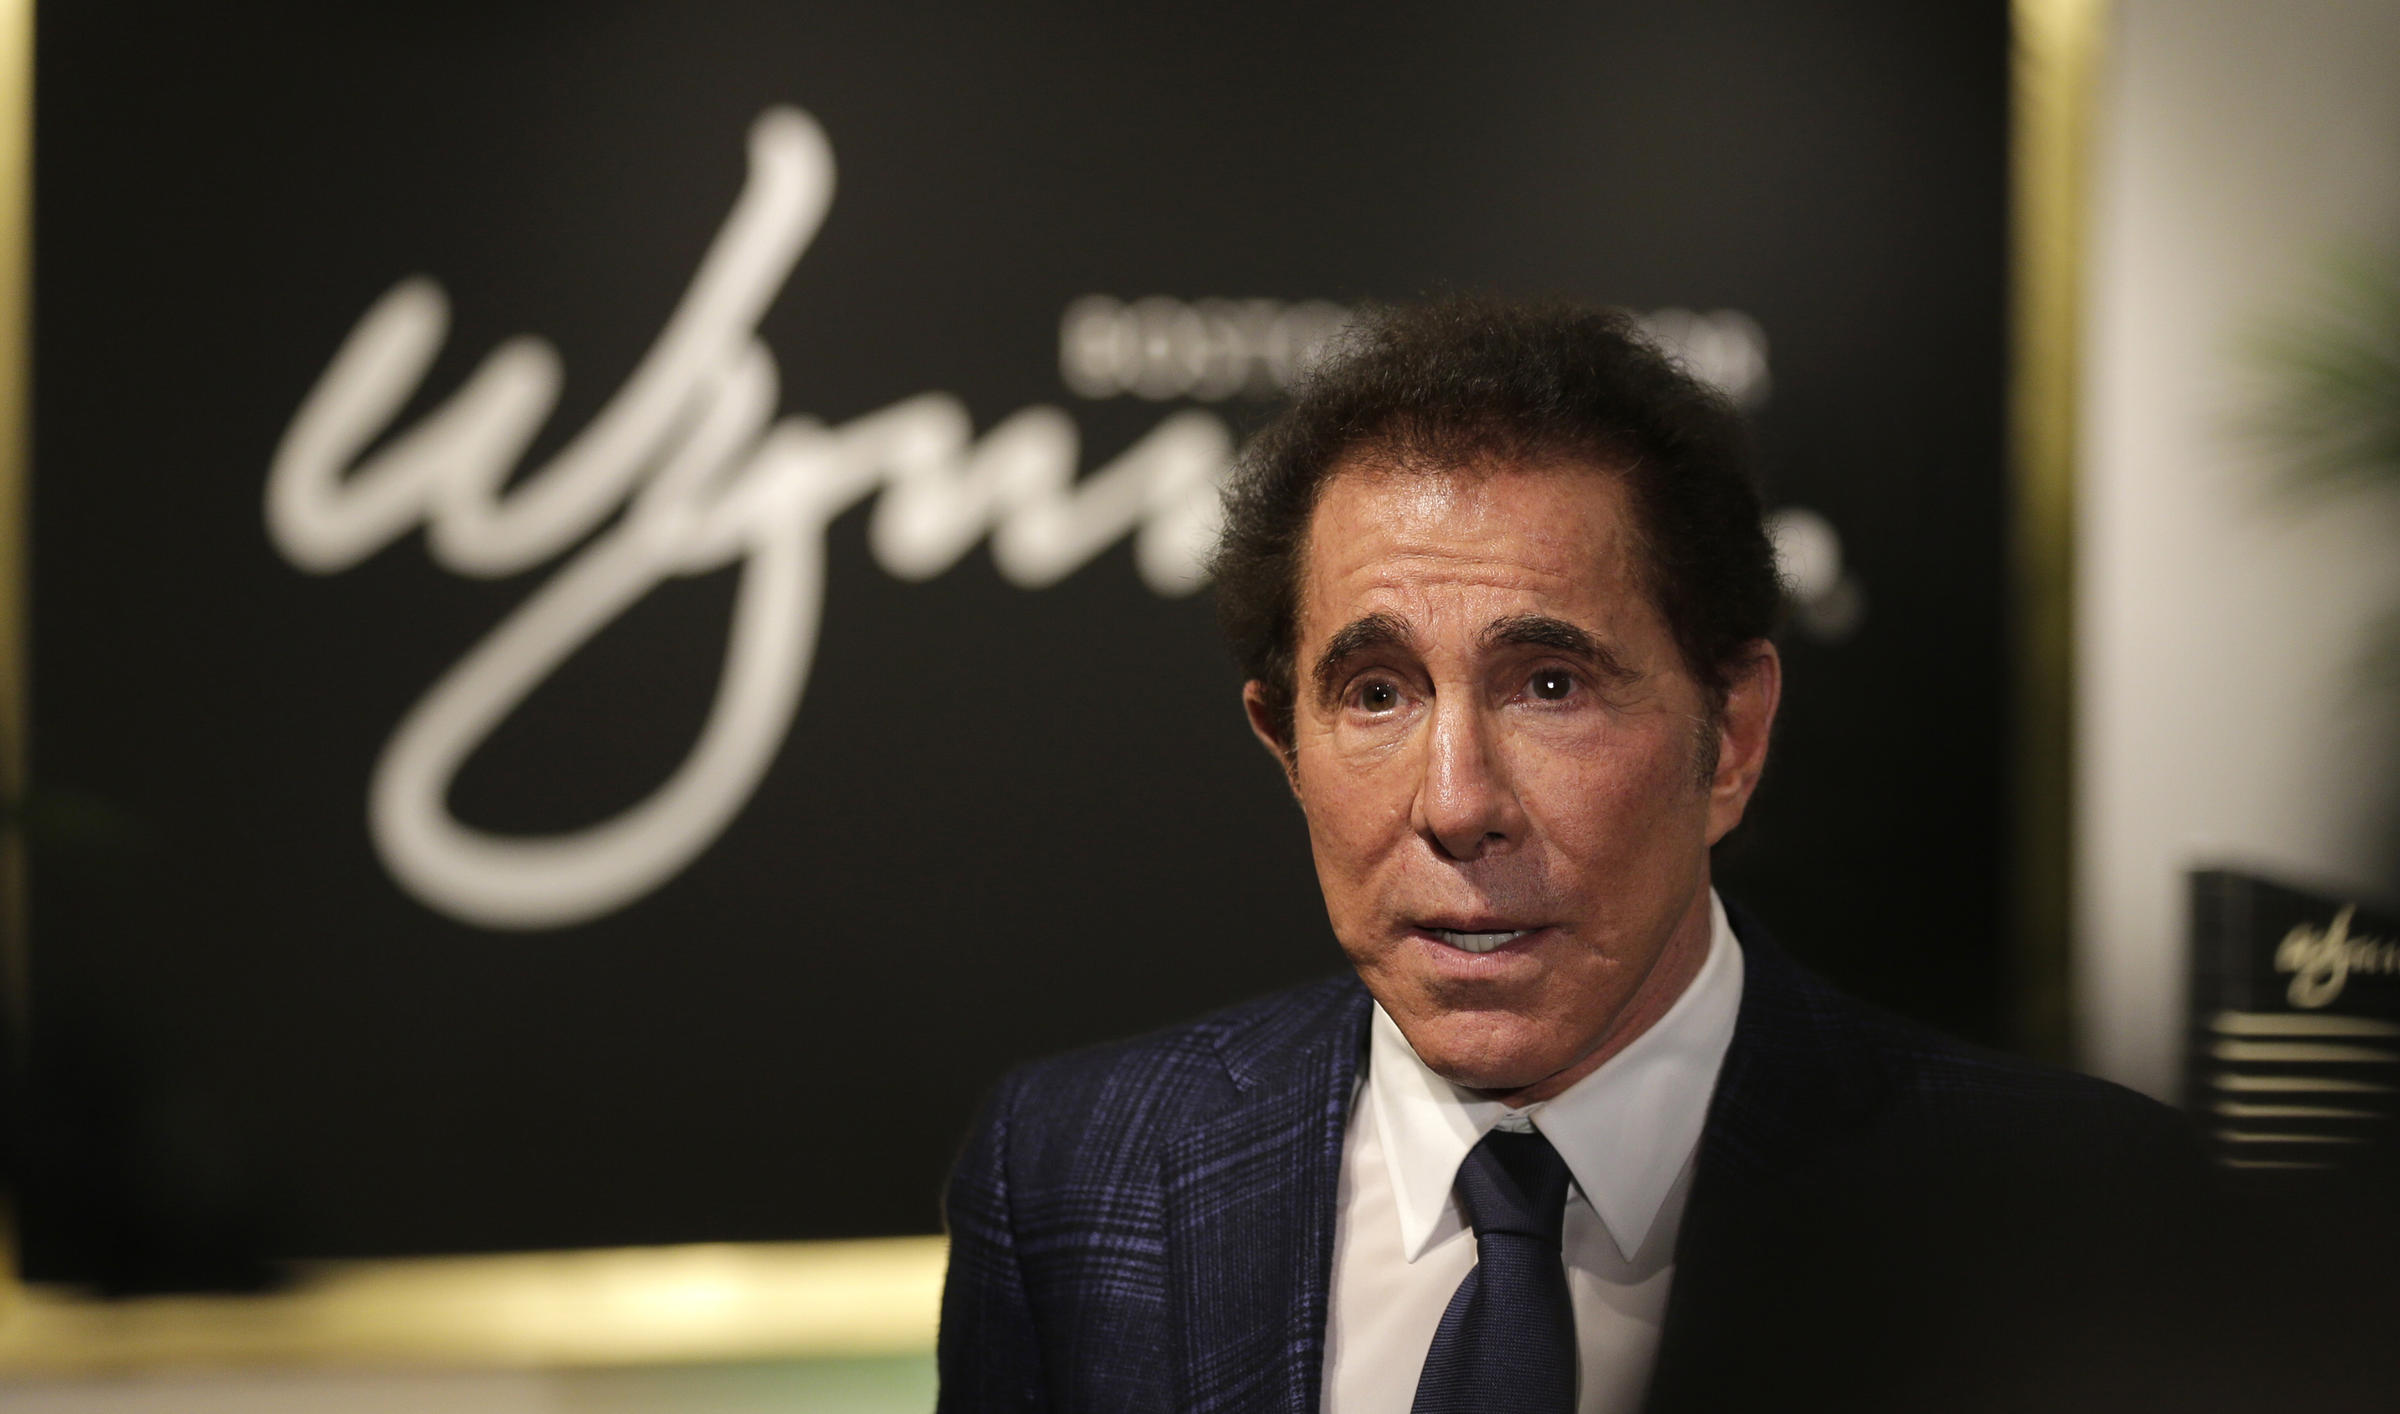 Two Republican senators press GOP over Wynn donations, following sexual misconduct allegations